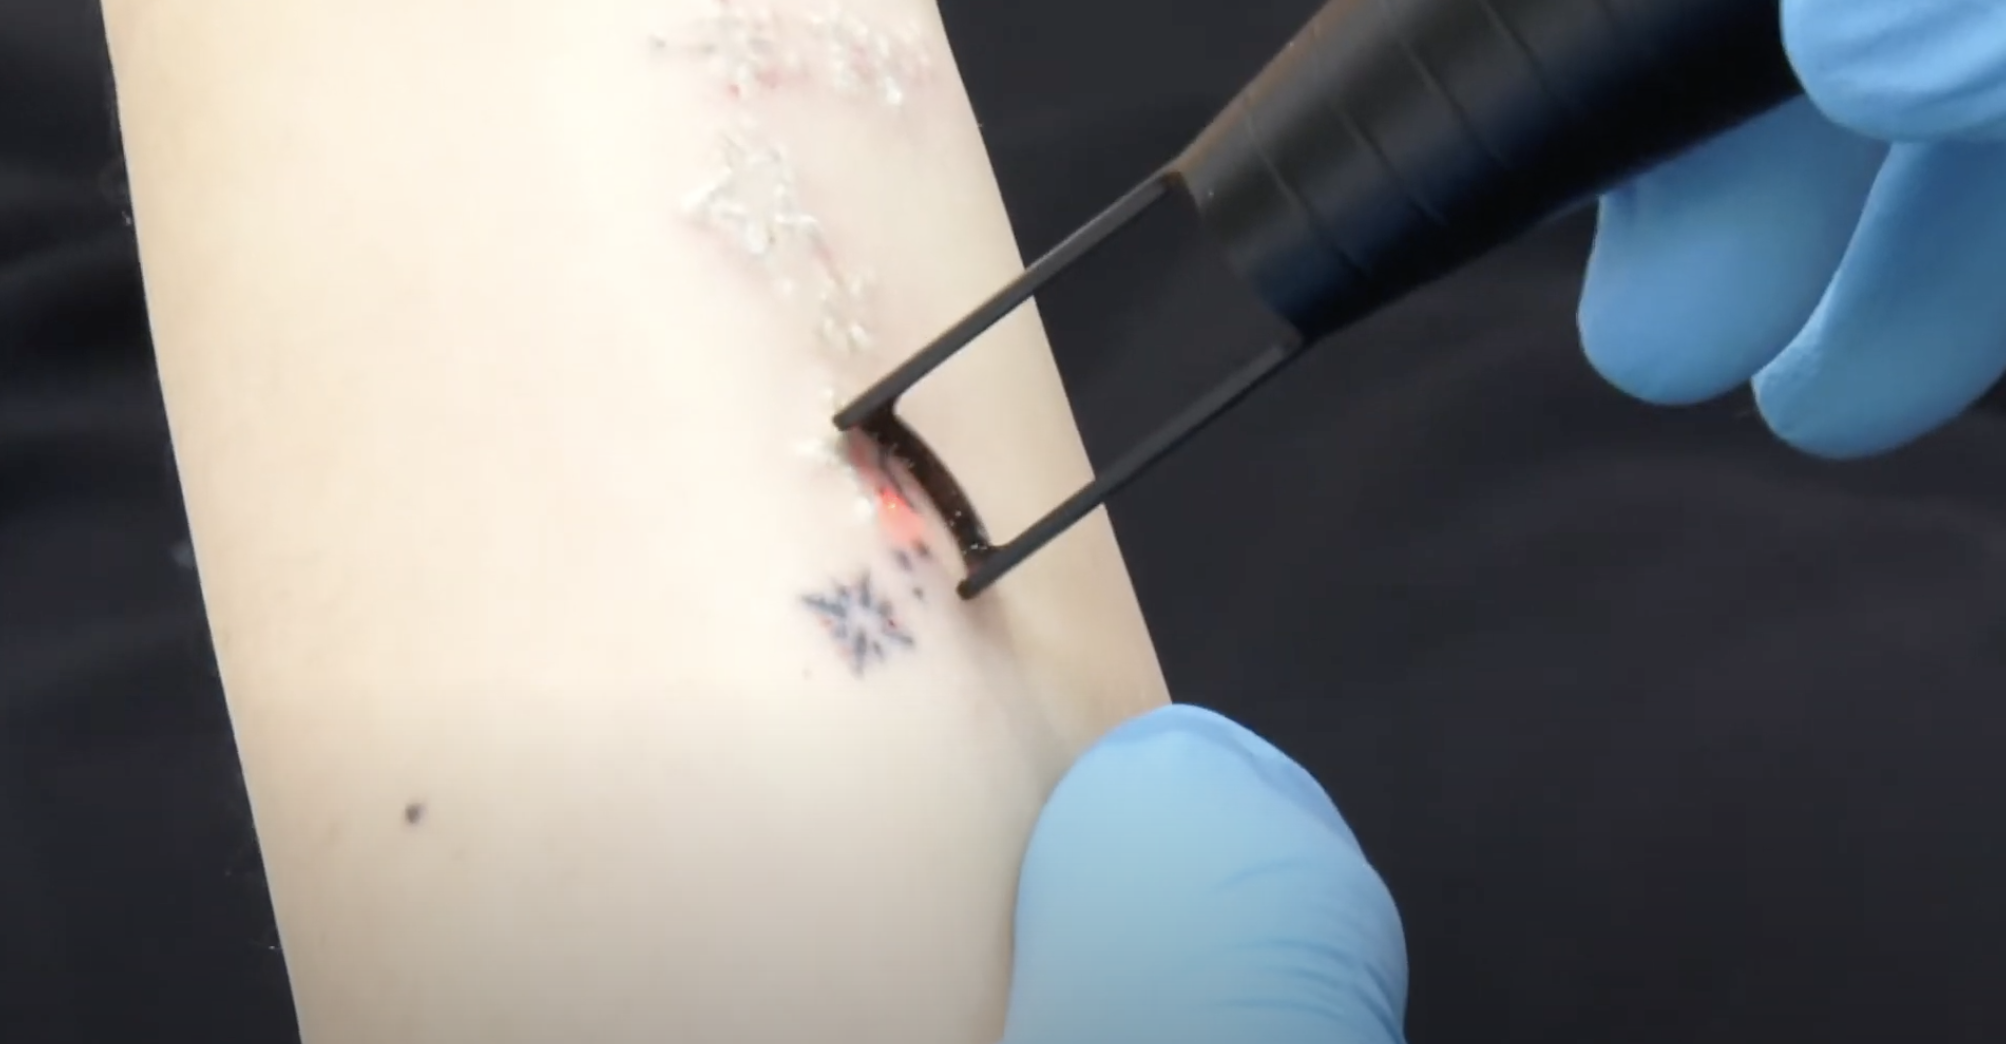 Laser skin care treatment and tattoo removal procedure in Southampton Ny.